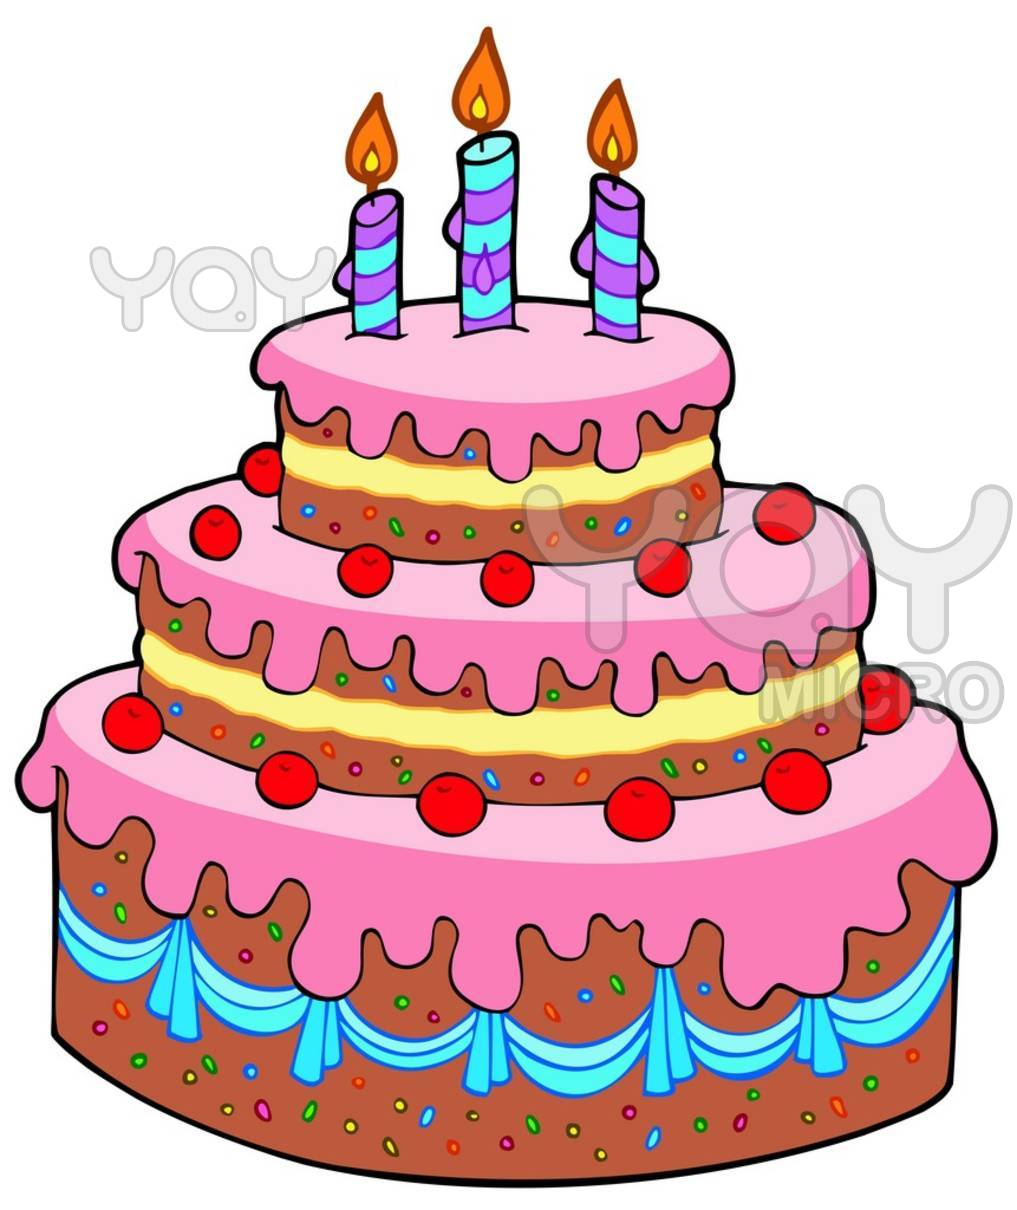 Cute Cartoon Birthday Cakes Images & Pictures - Becuo